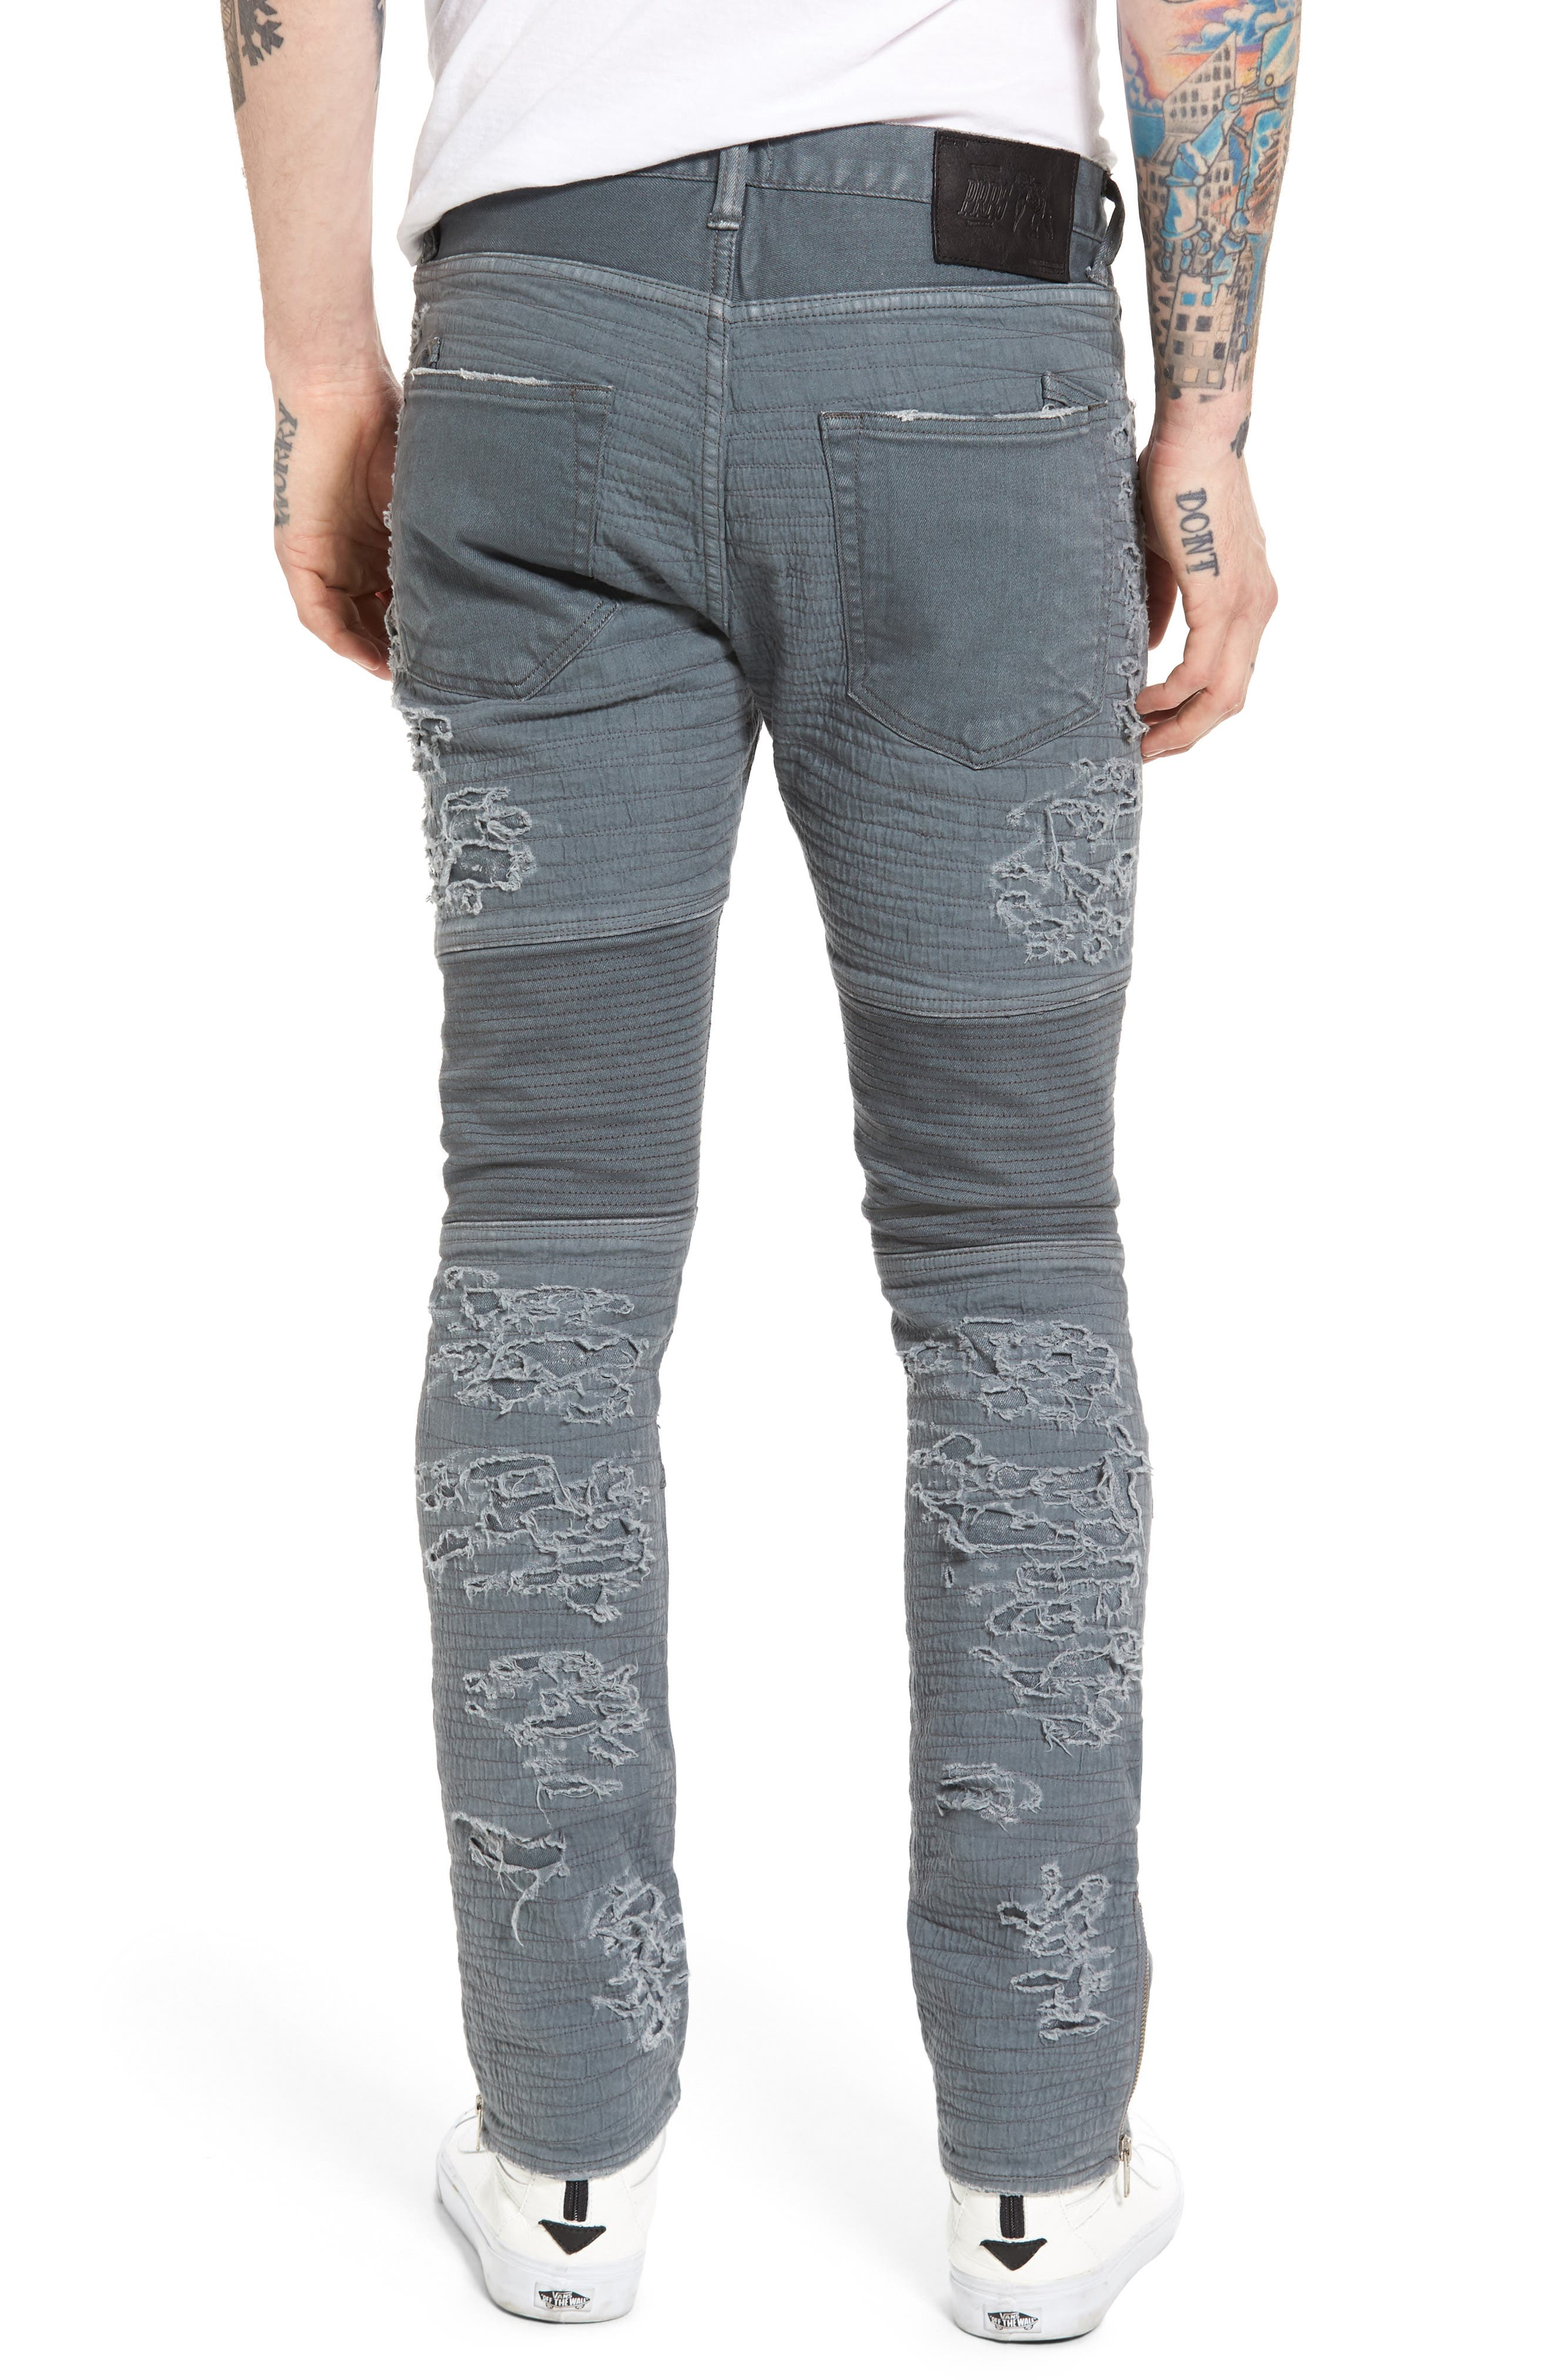 Windsor Slim Fit Jeans,                             Alternate thumbnail 2, color,                             DARK GREY